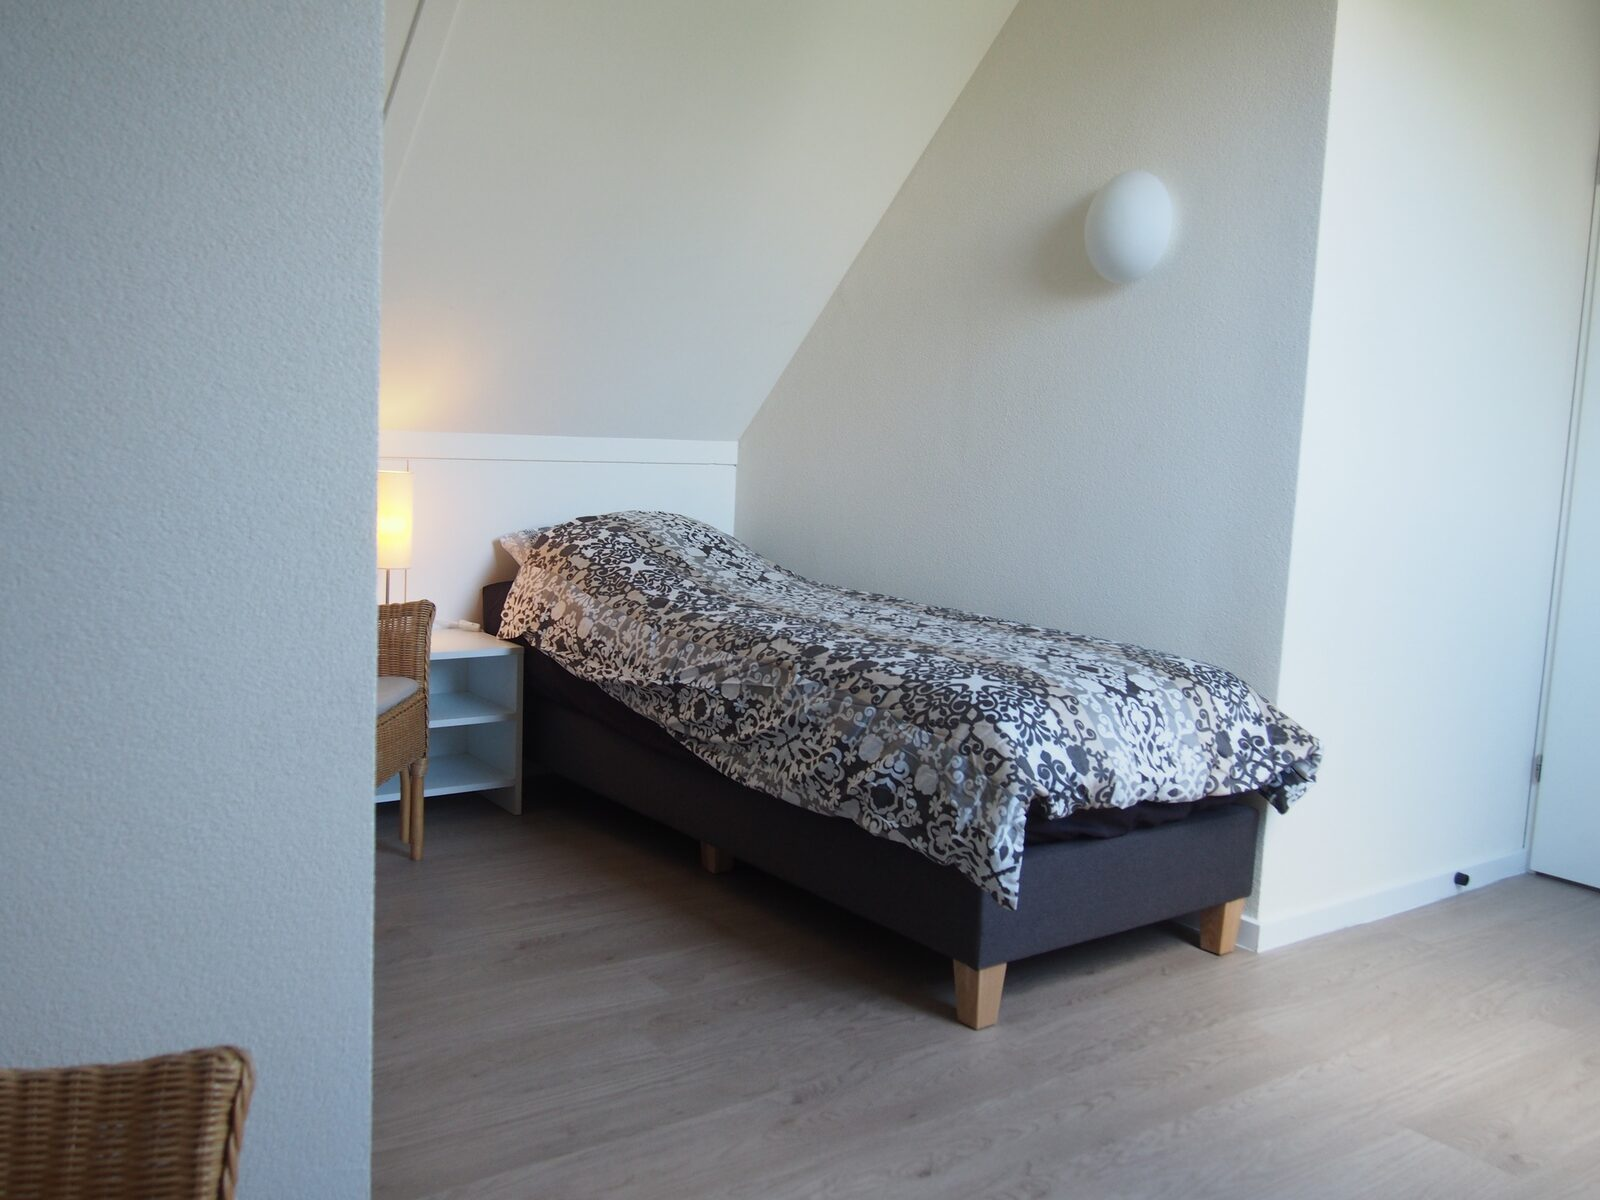 6-person Luxury Bungalow Schipbeek